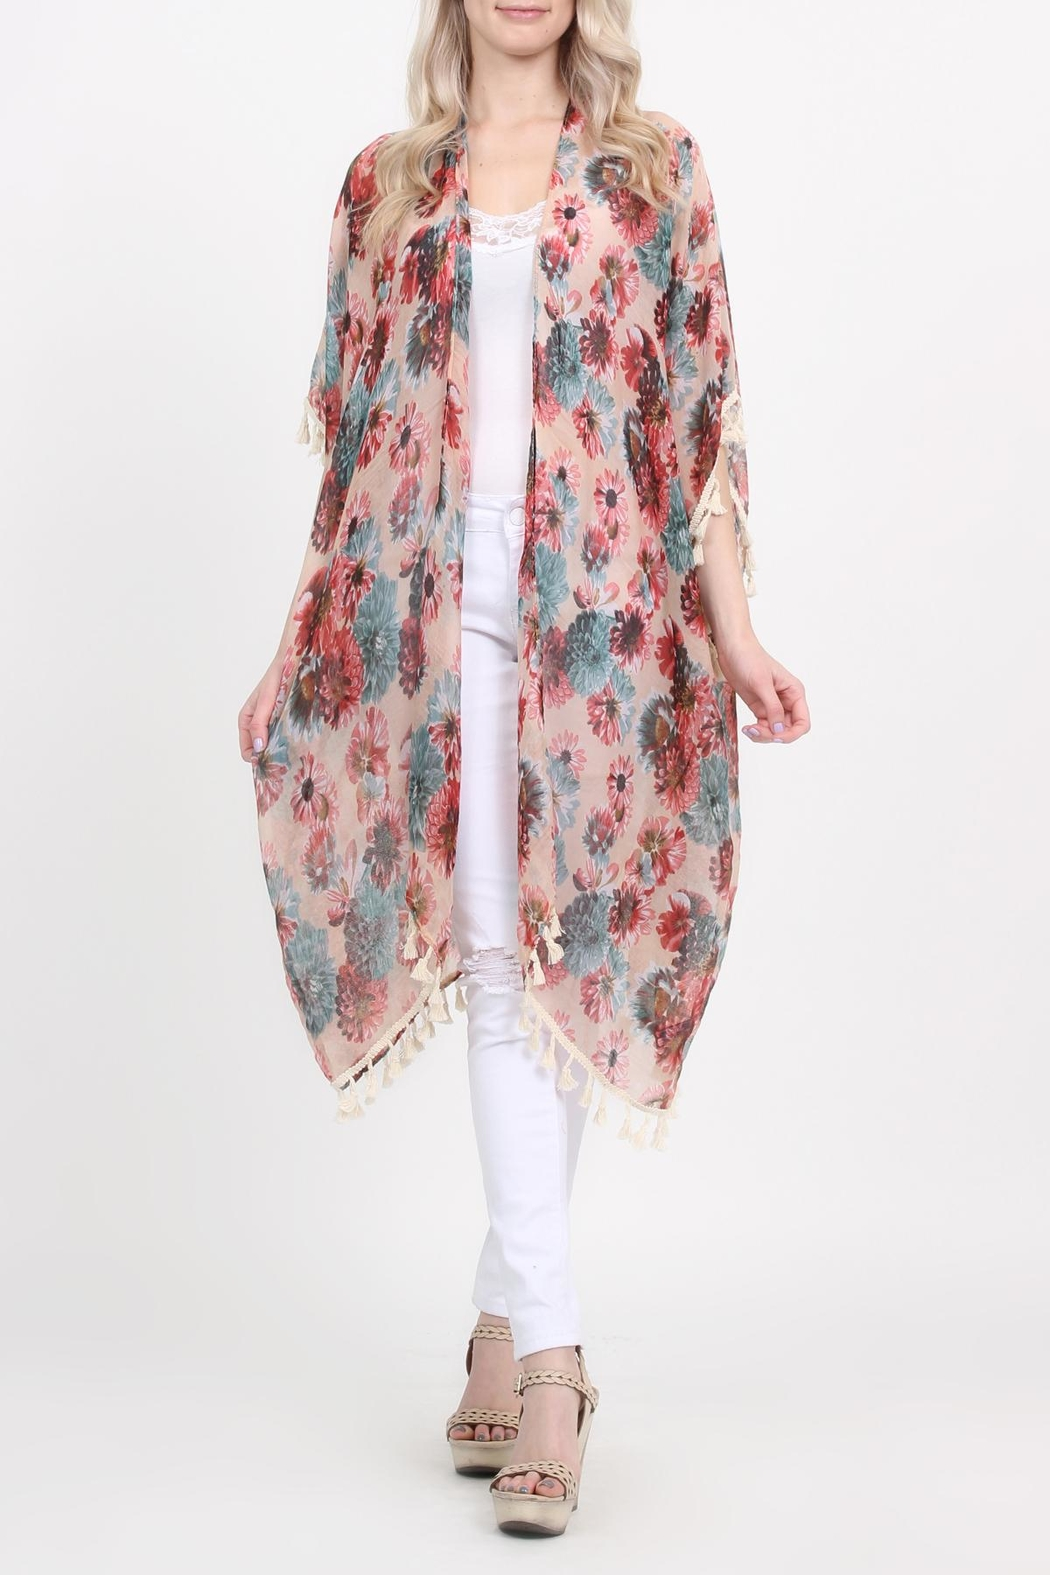 Riah Fashion Floral-Print Semi-Sheer Tassel-Cardigan - Back Cropped Image